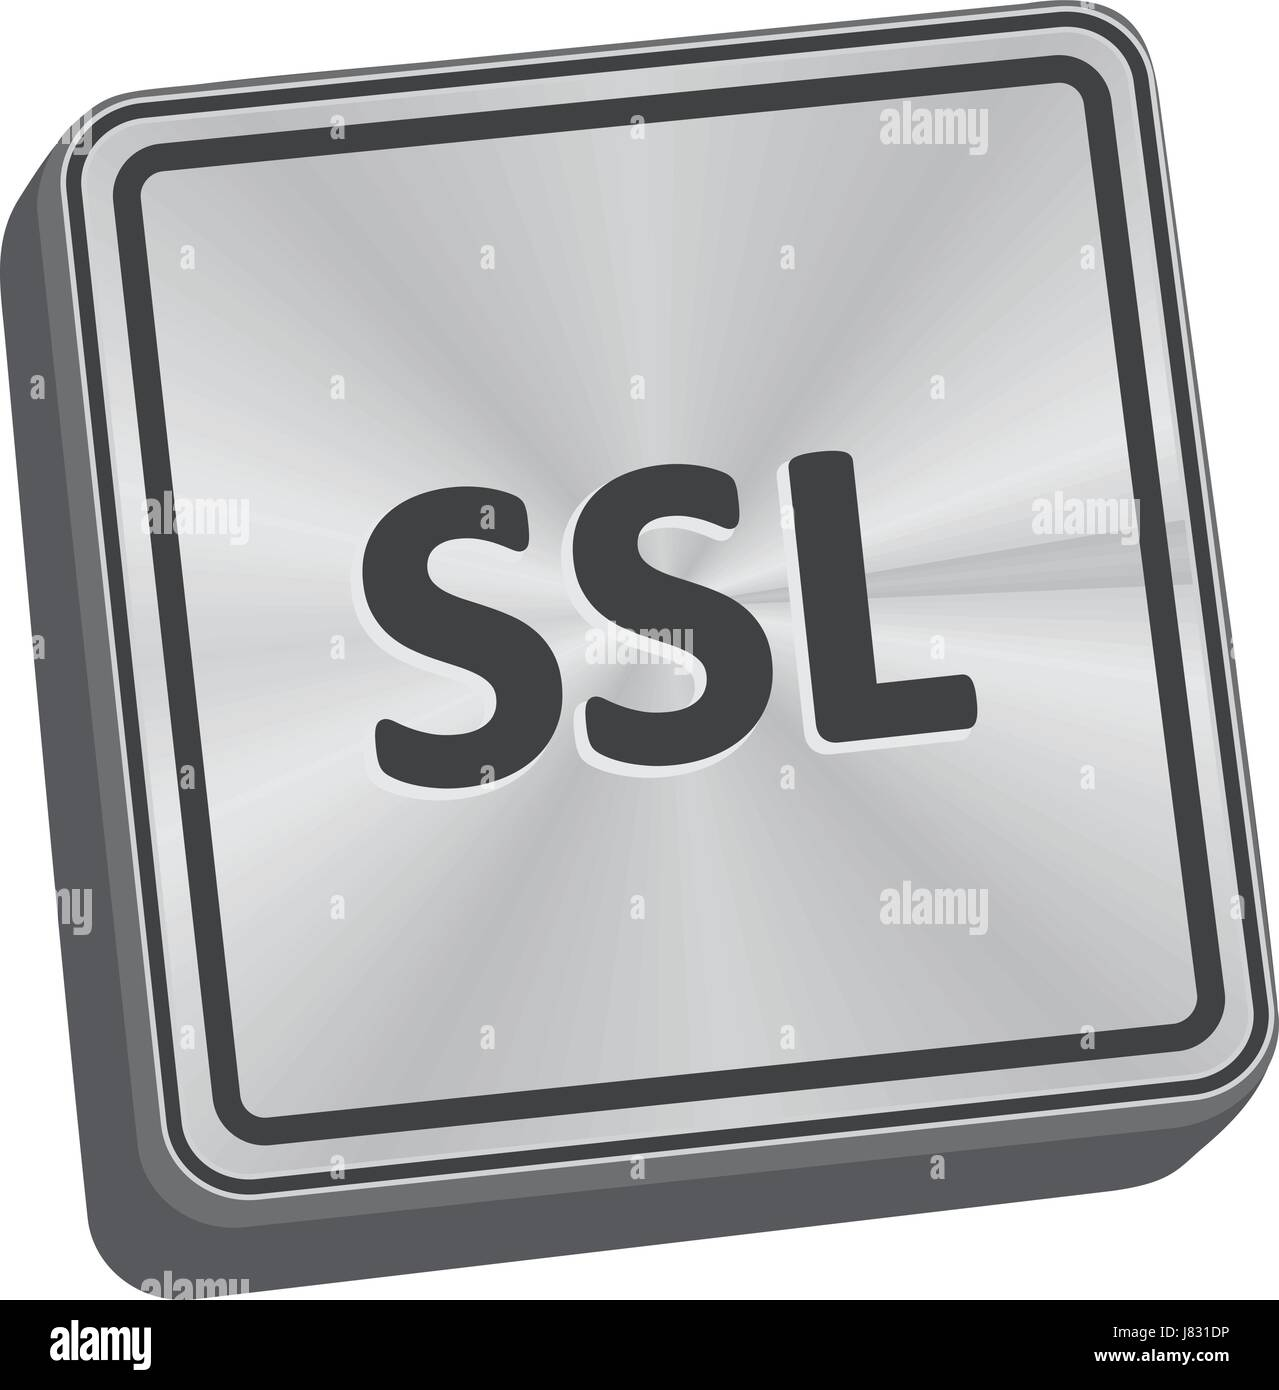 SSL button 3D key in brushed metal - Stock Image